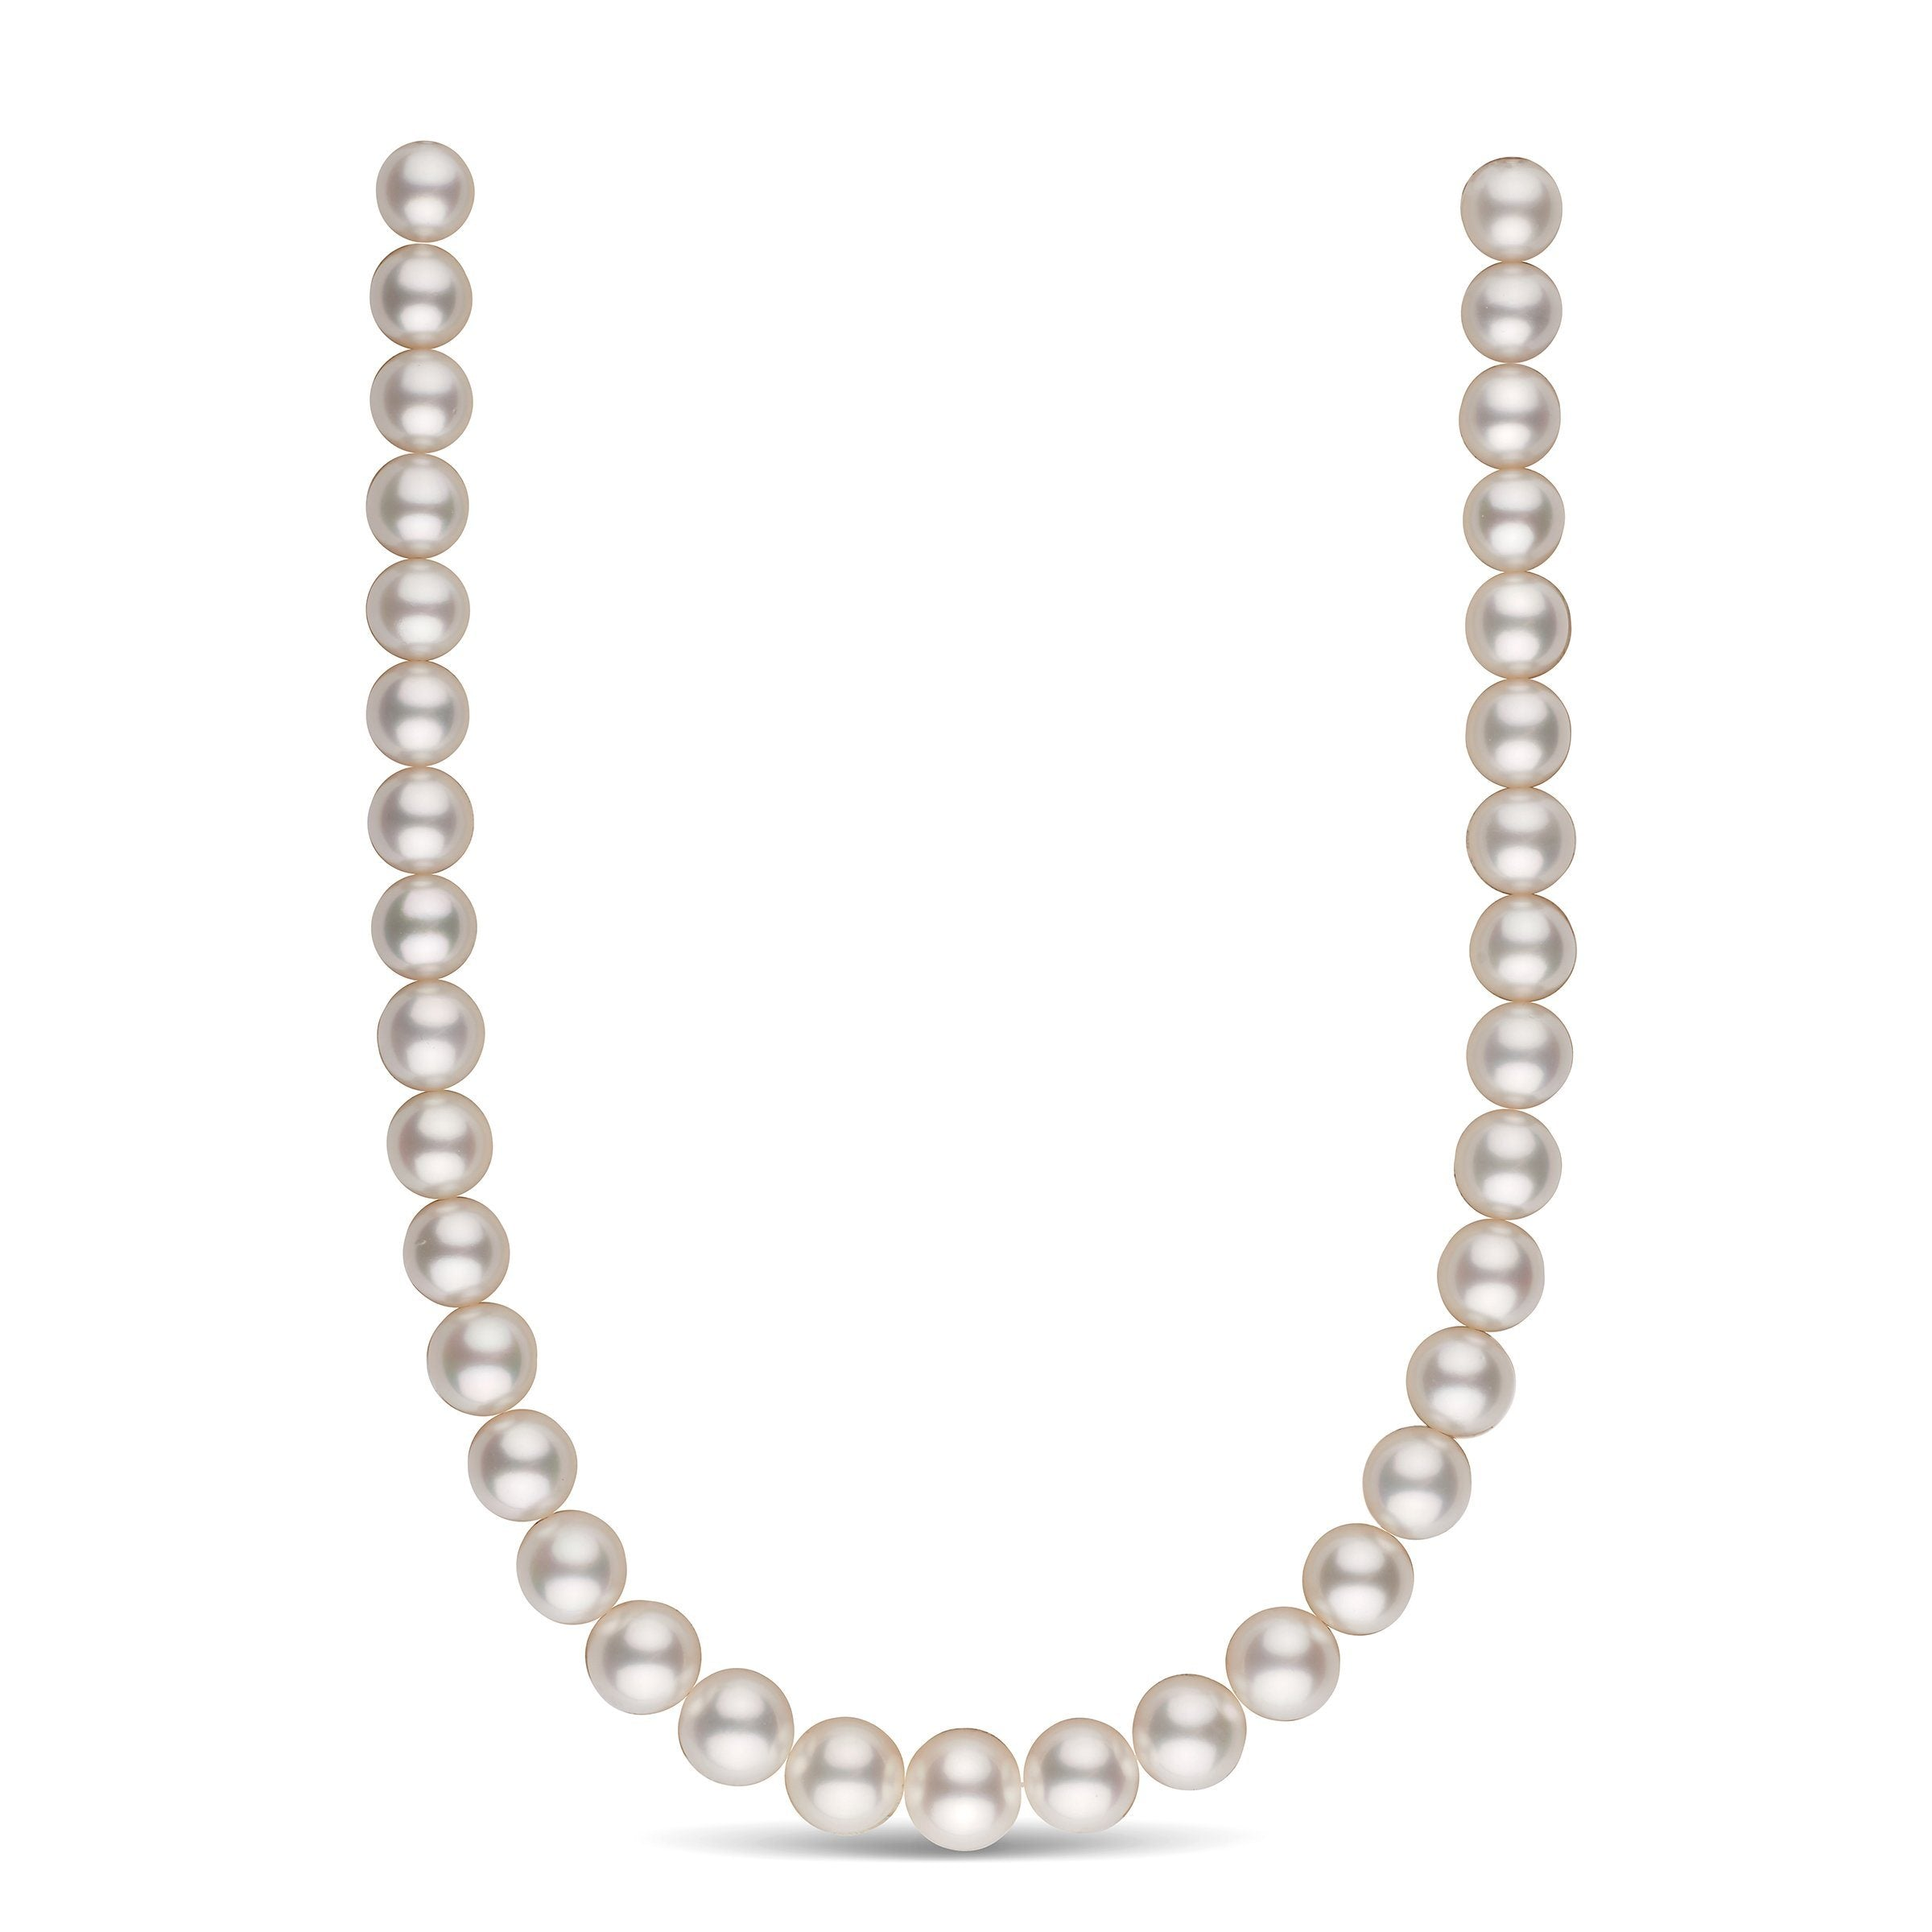 The Nocturne White South Sea Pearl Necklace